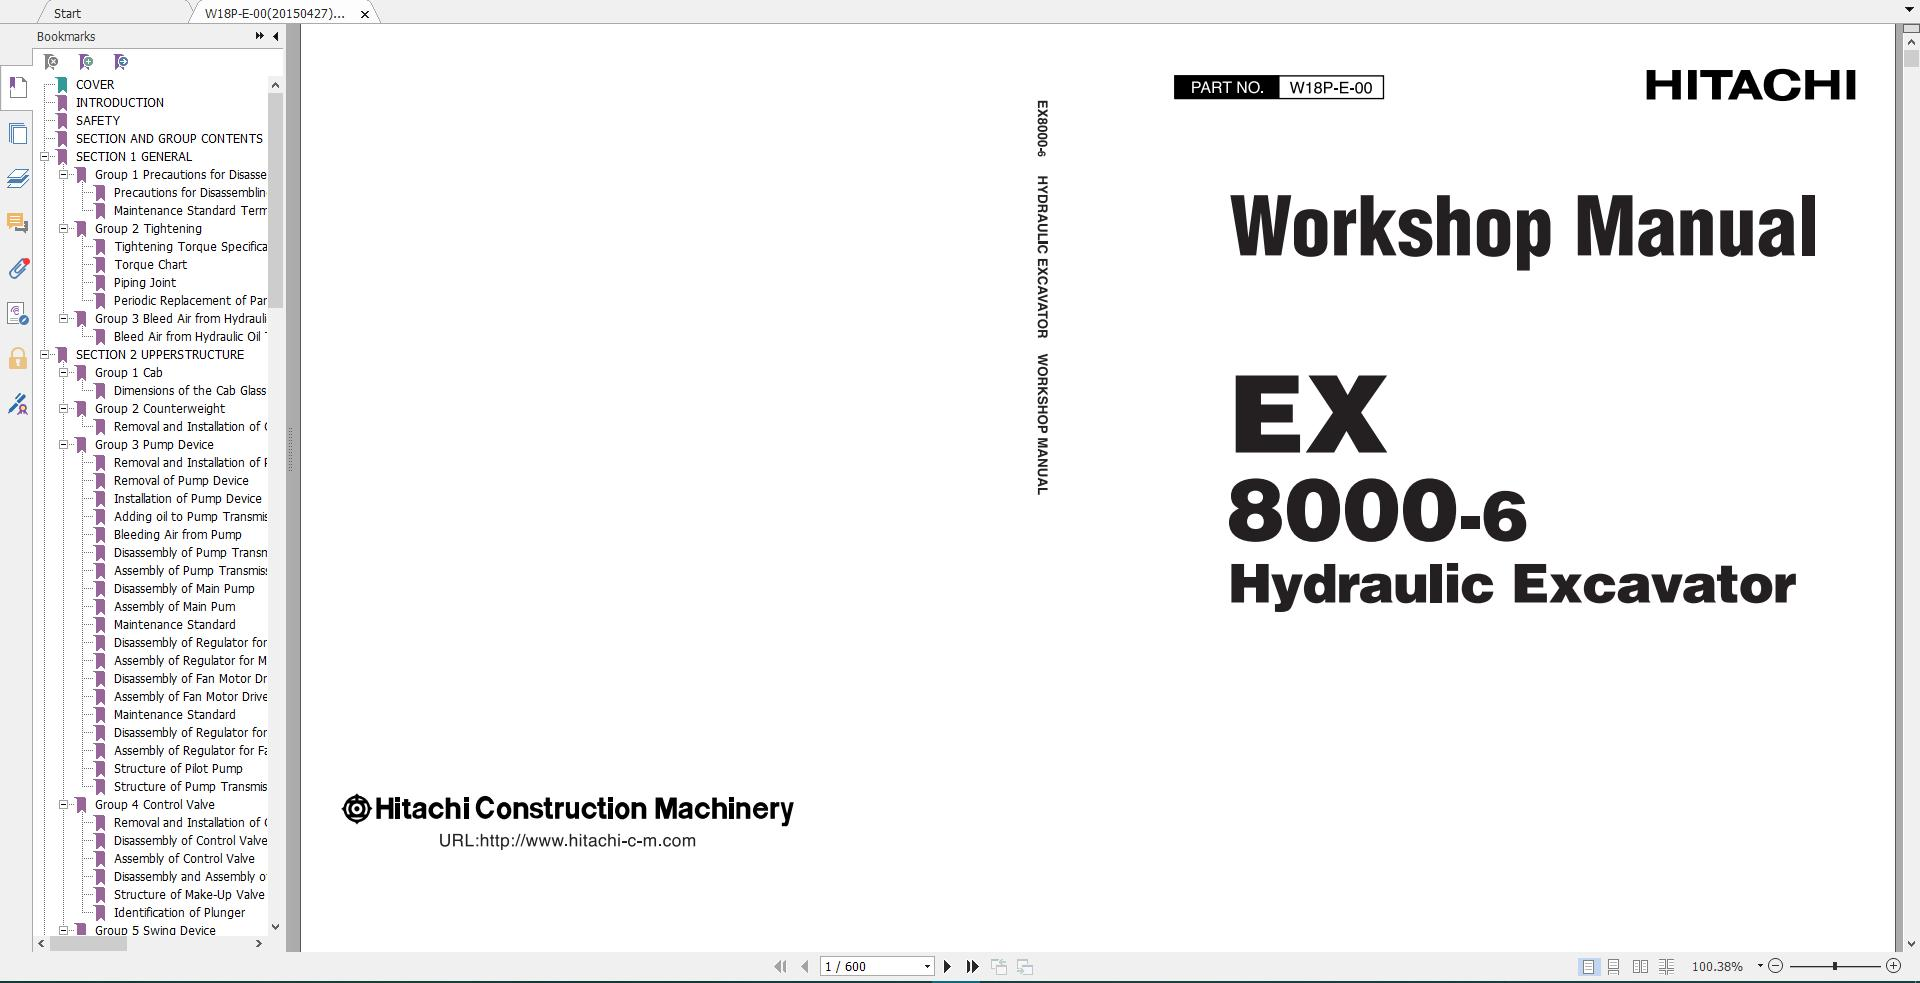 Hitachi Mining Crawler Excavator EX Full Workshop Manual